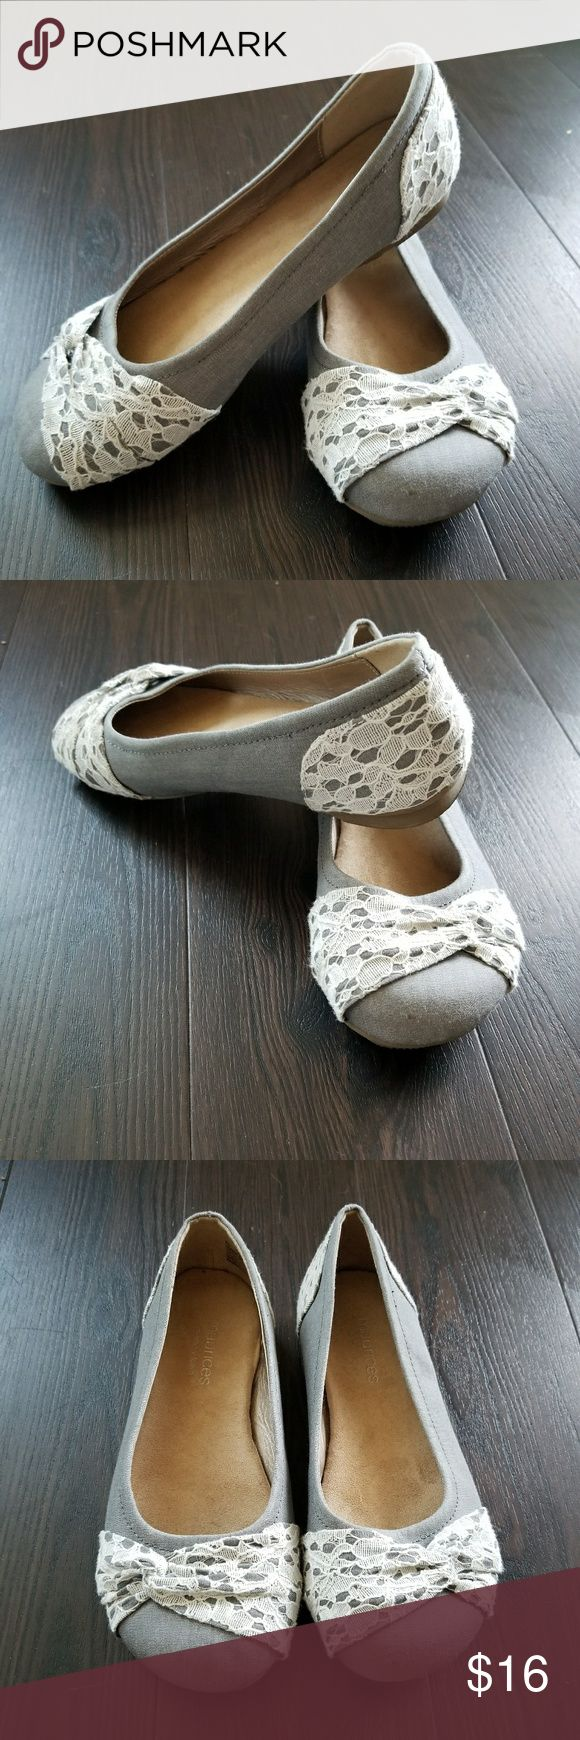 Gorgeous Maurices flats Size 7 Maurices memory foam. Size 7. Only wore these 3 times- still look new! Memory foam makes them much more comfortable than normal flats.   BUNDLE AND SAVE! Maurices Shoes Flats & Loafers